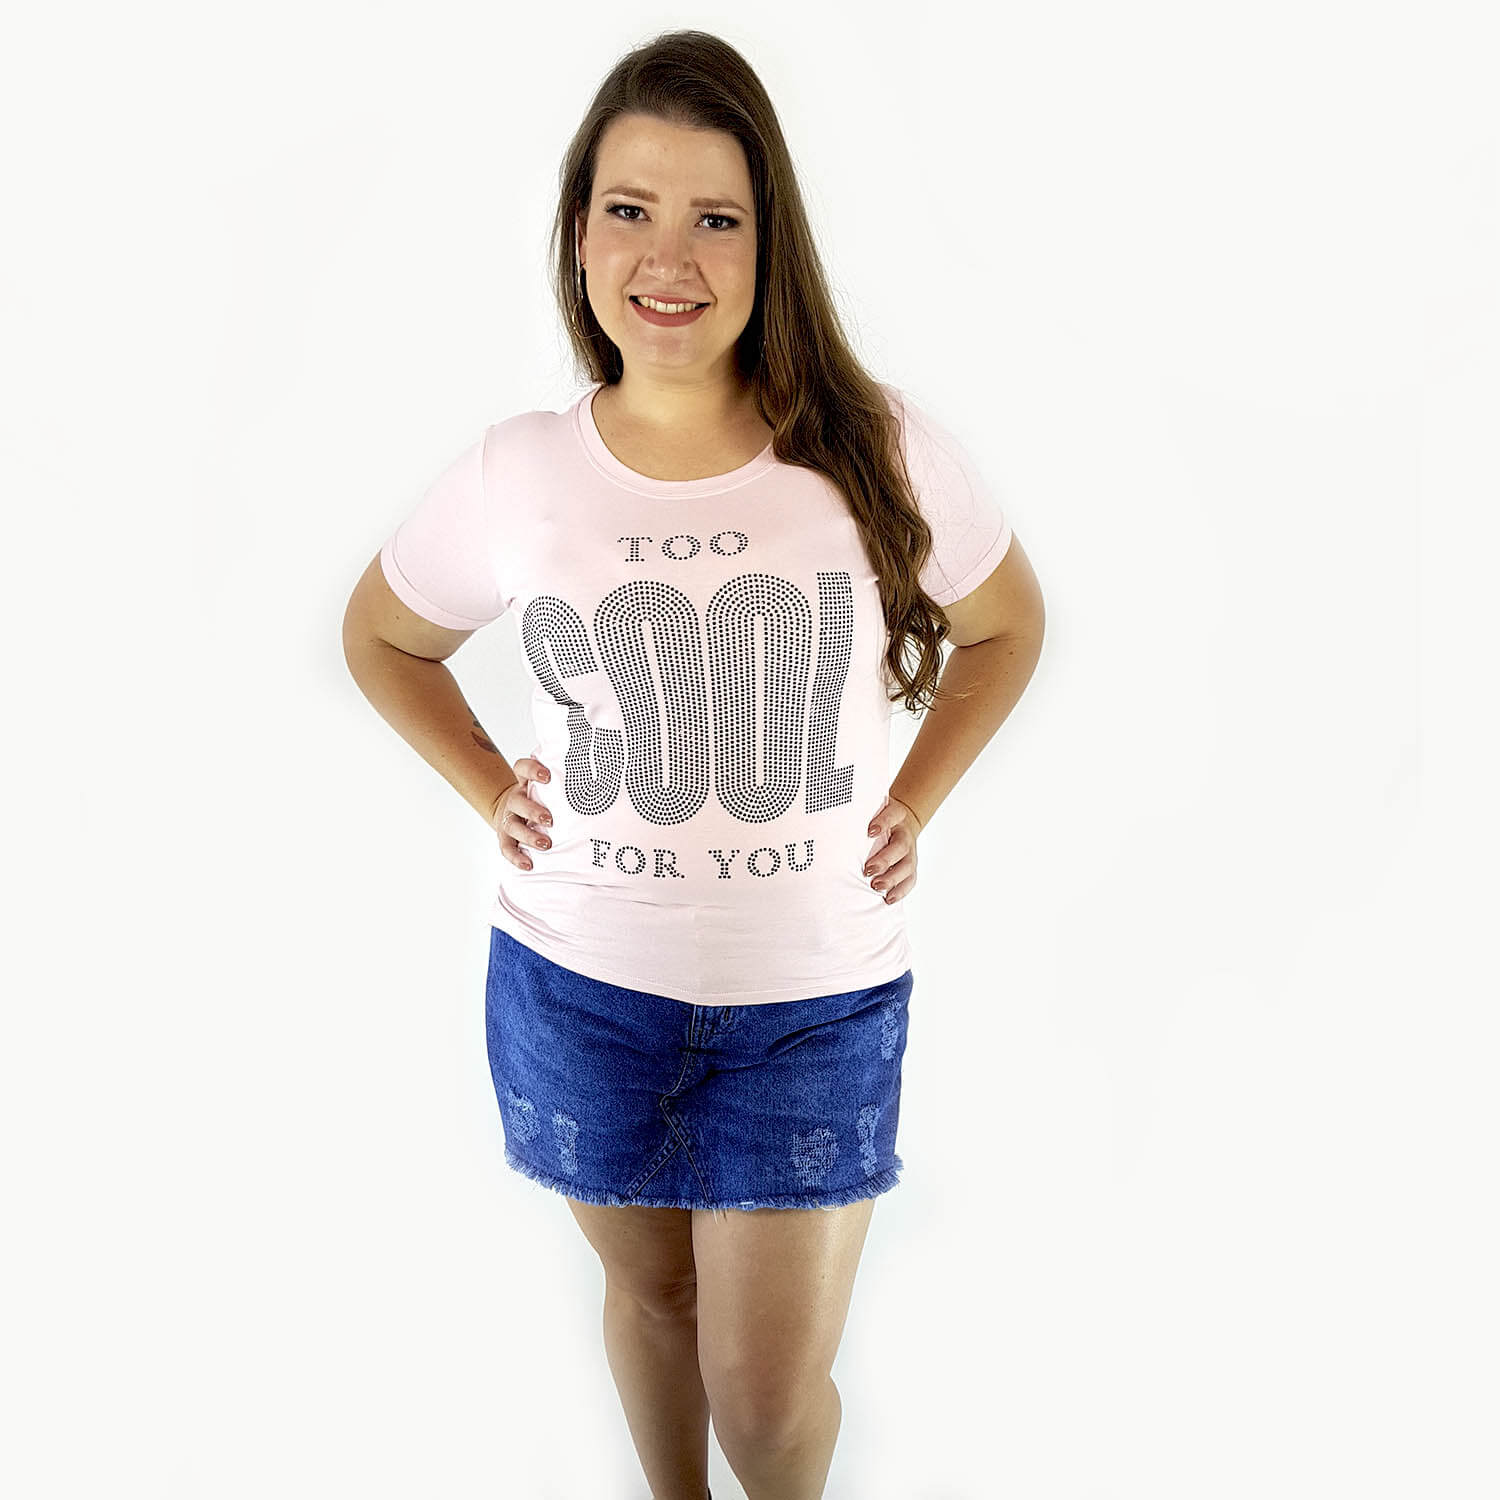 Shorts Saia Feminino Plus Size - Annual Plus